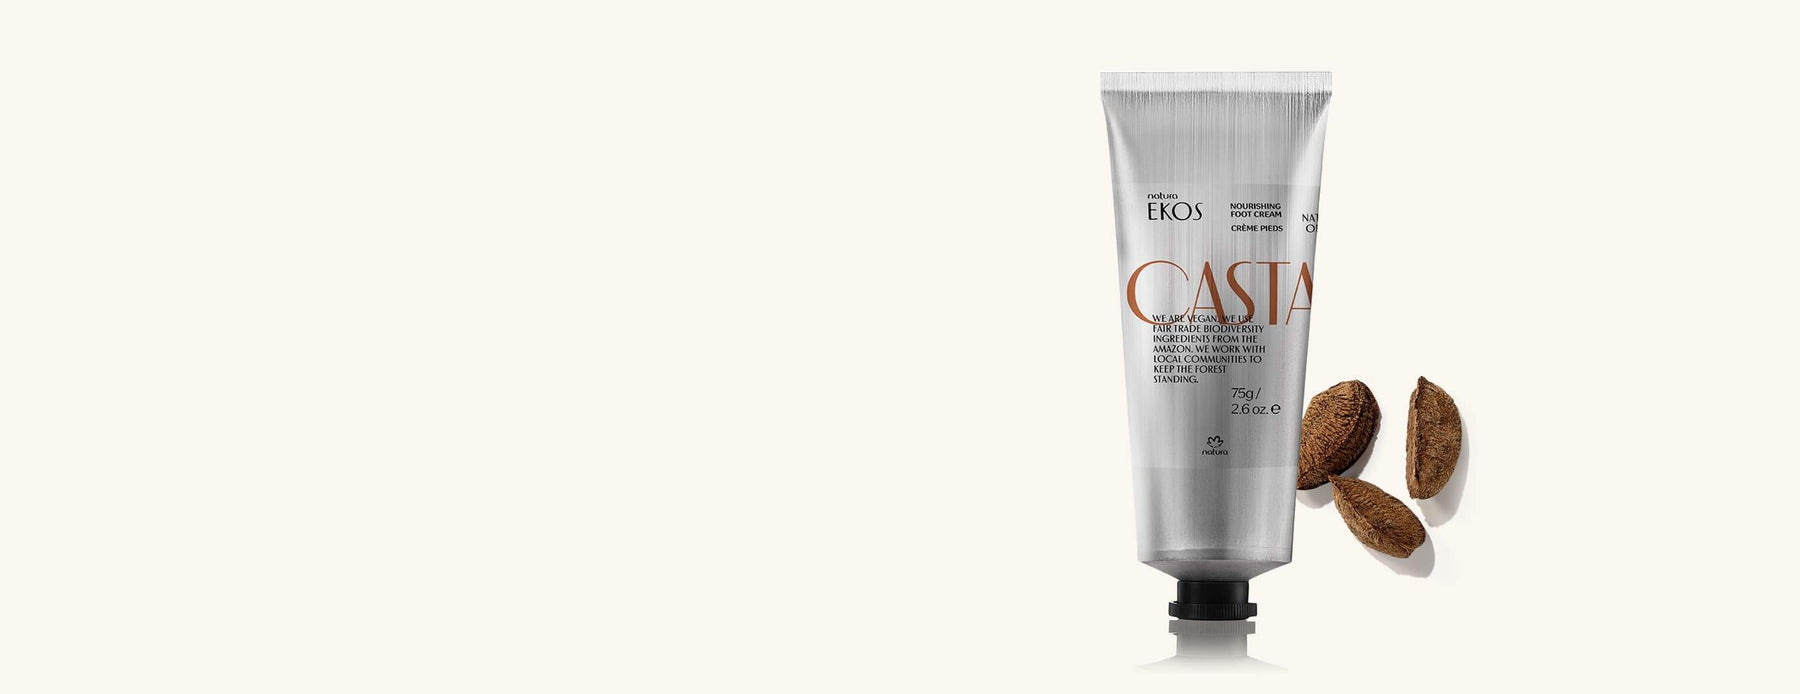 Natura Ekos Castanha Foot Cream